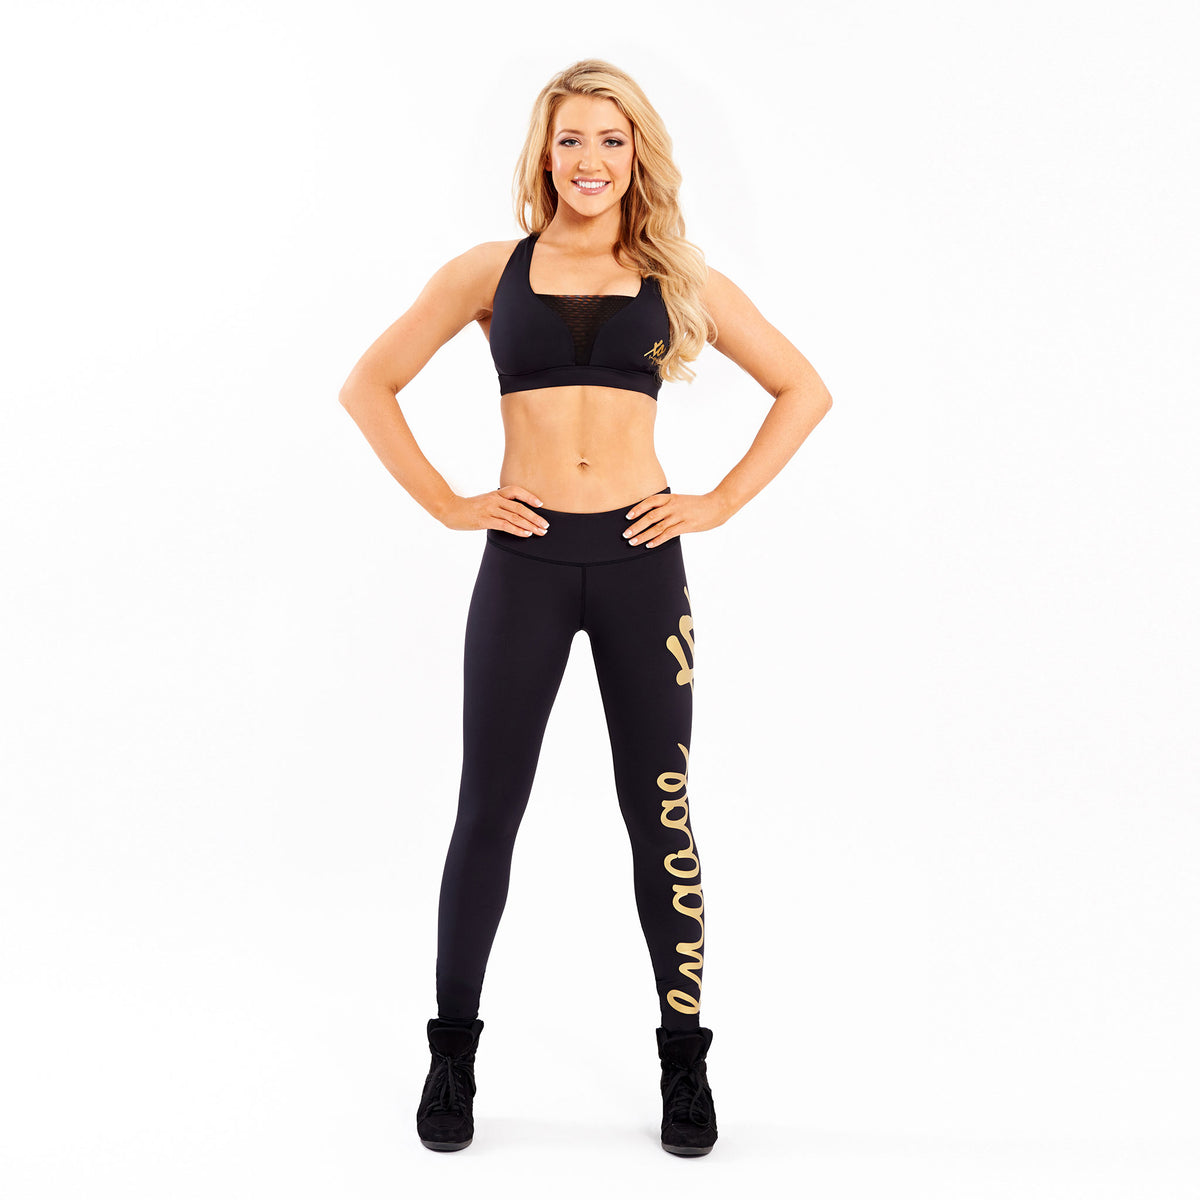 Essential Tight Gold - Long Leggings Engage MMA Online Fight Store for Apparel, Fightwear and Fight Gear Equipment